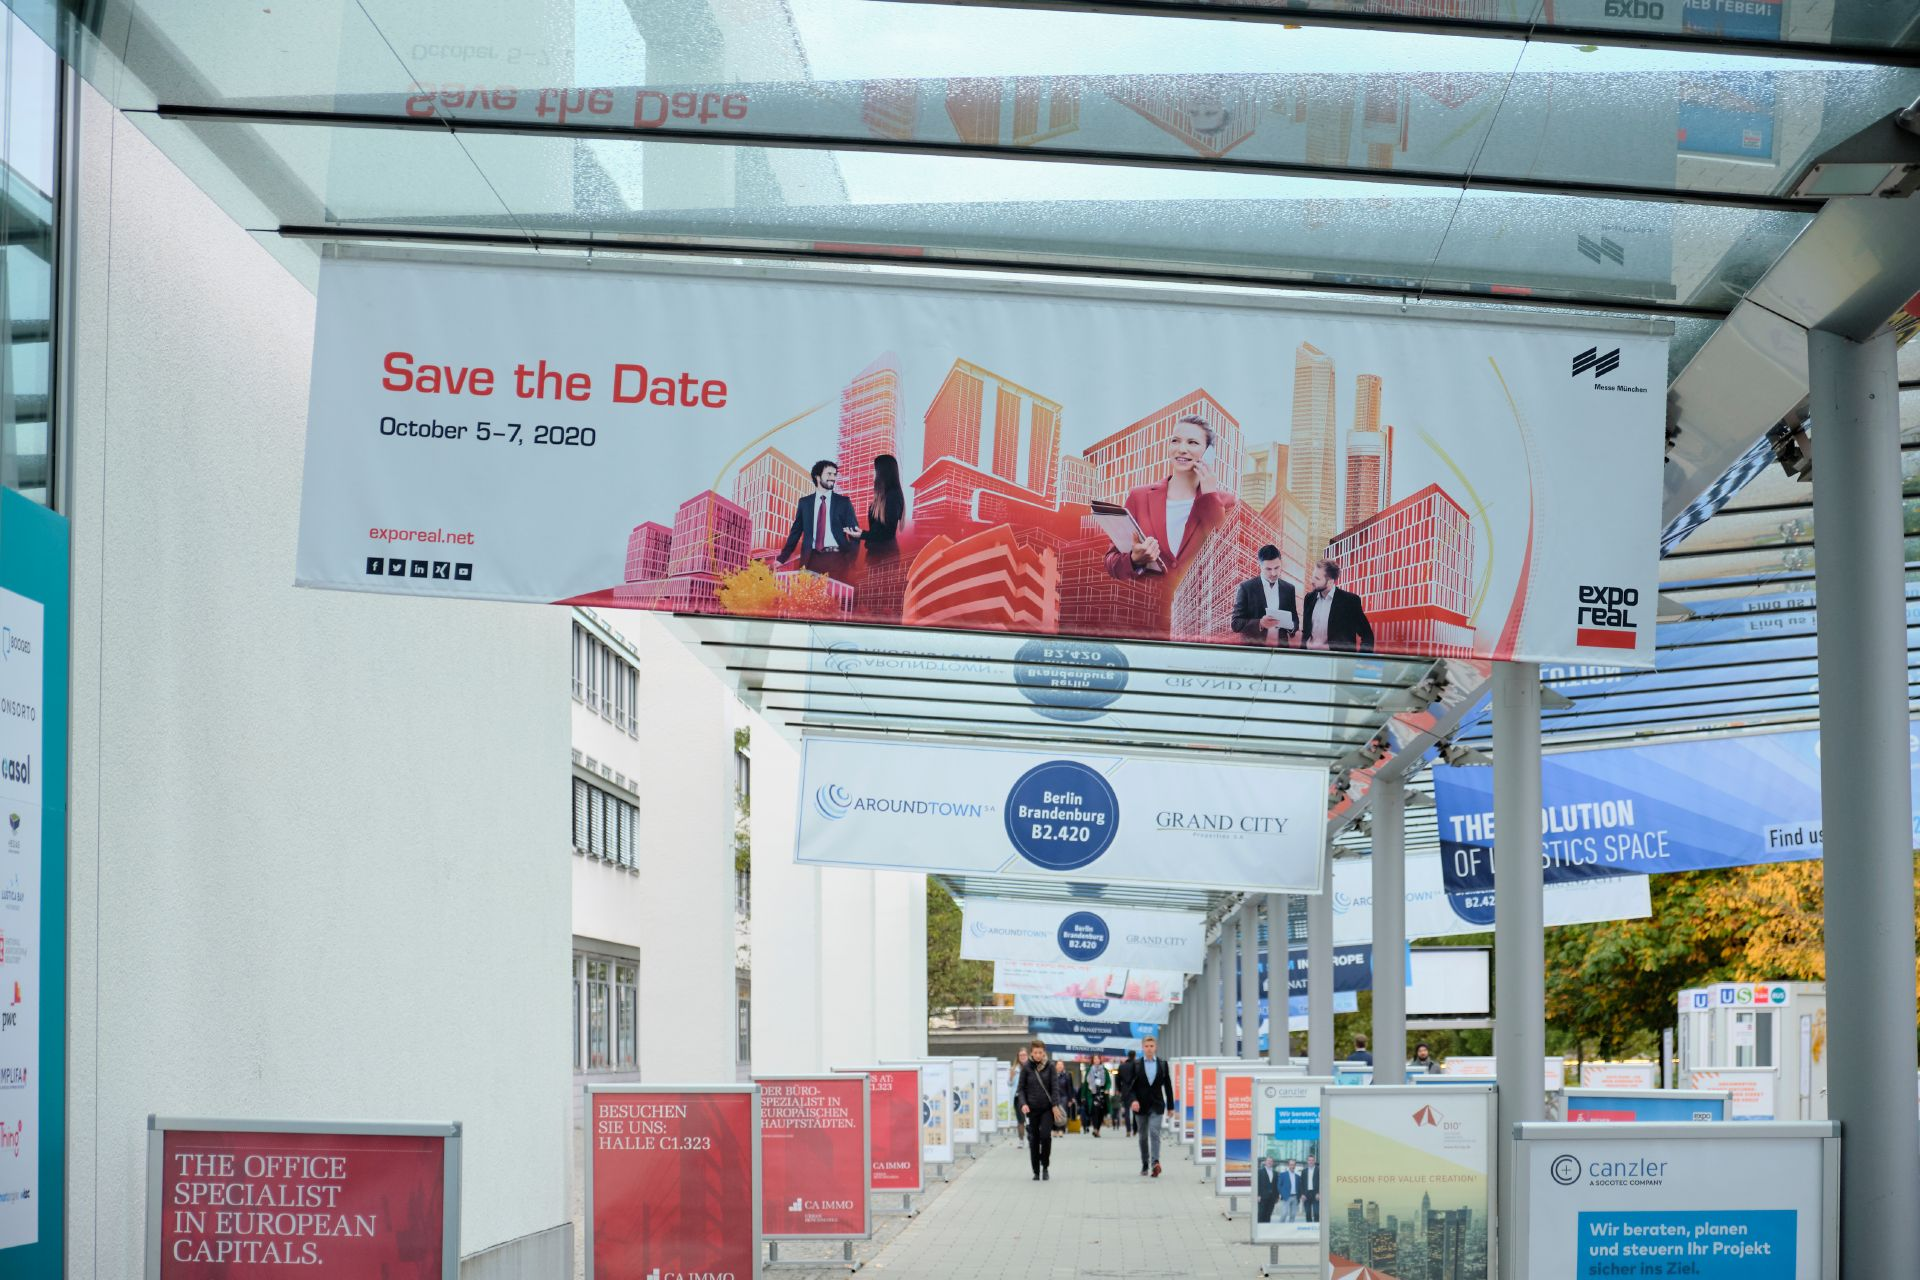 EXPO REAL Media Sales